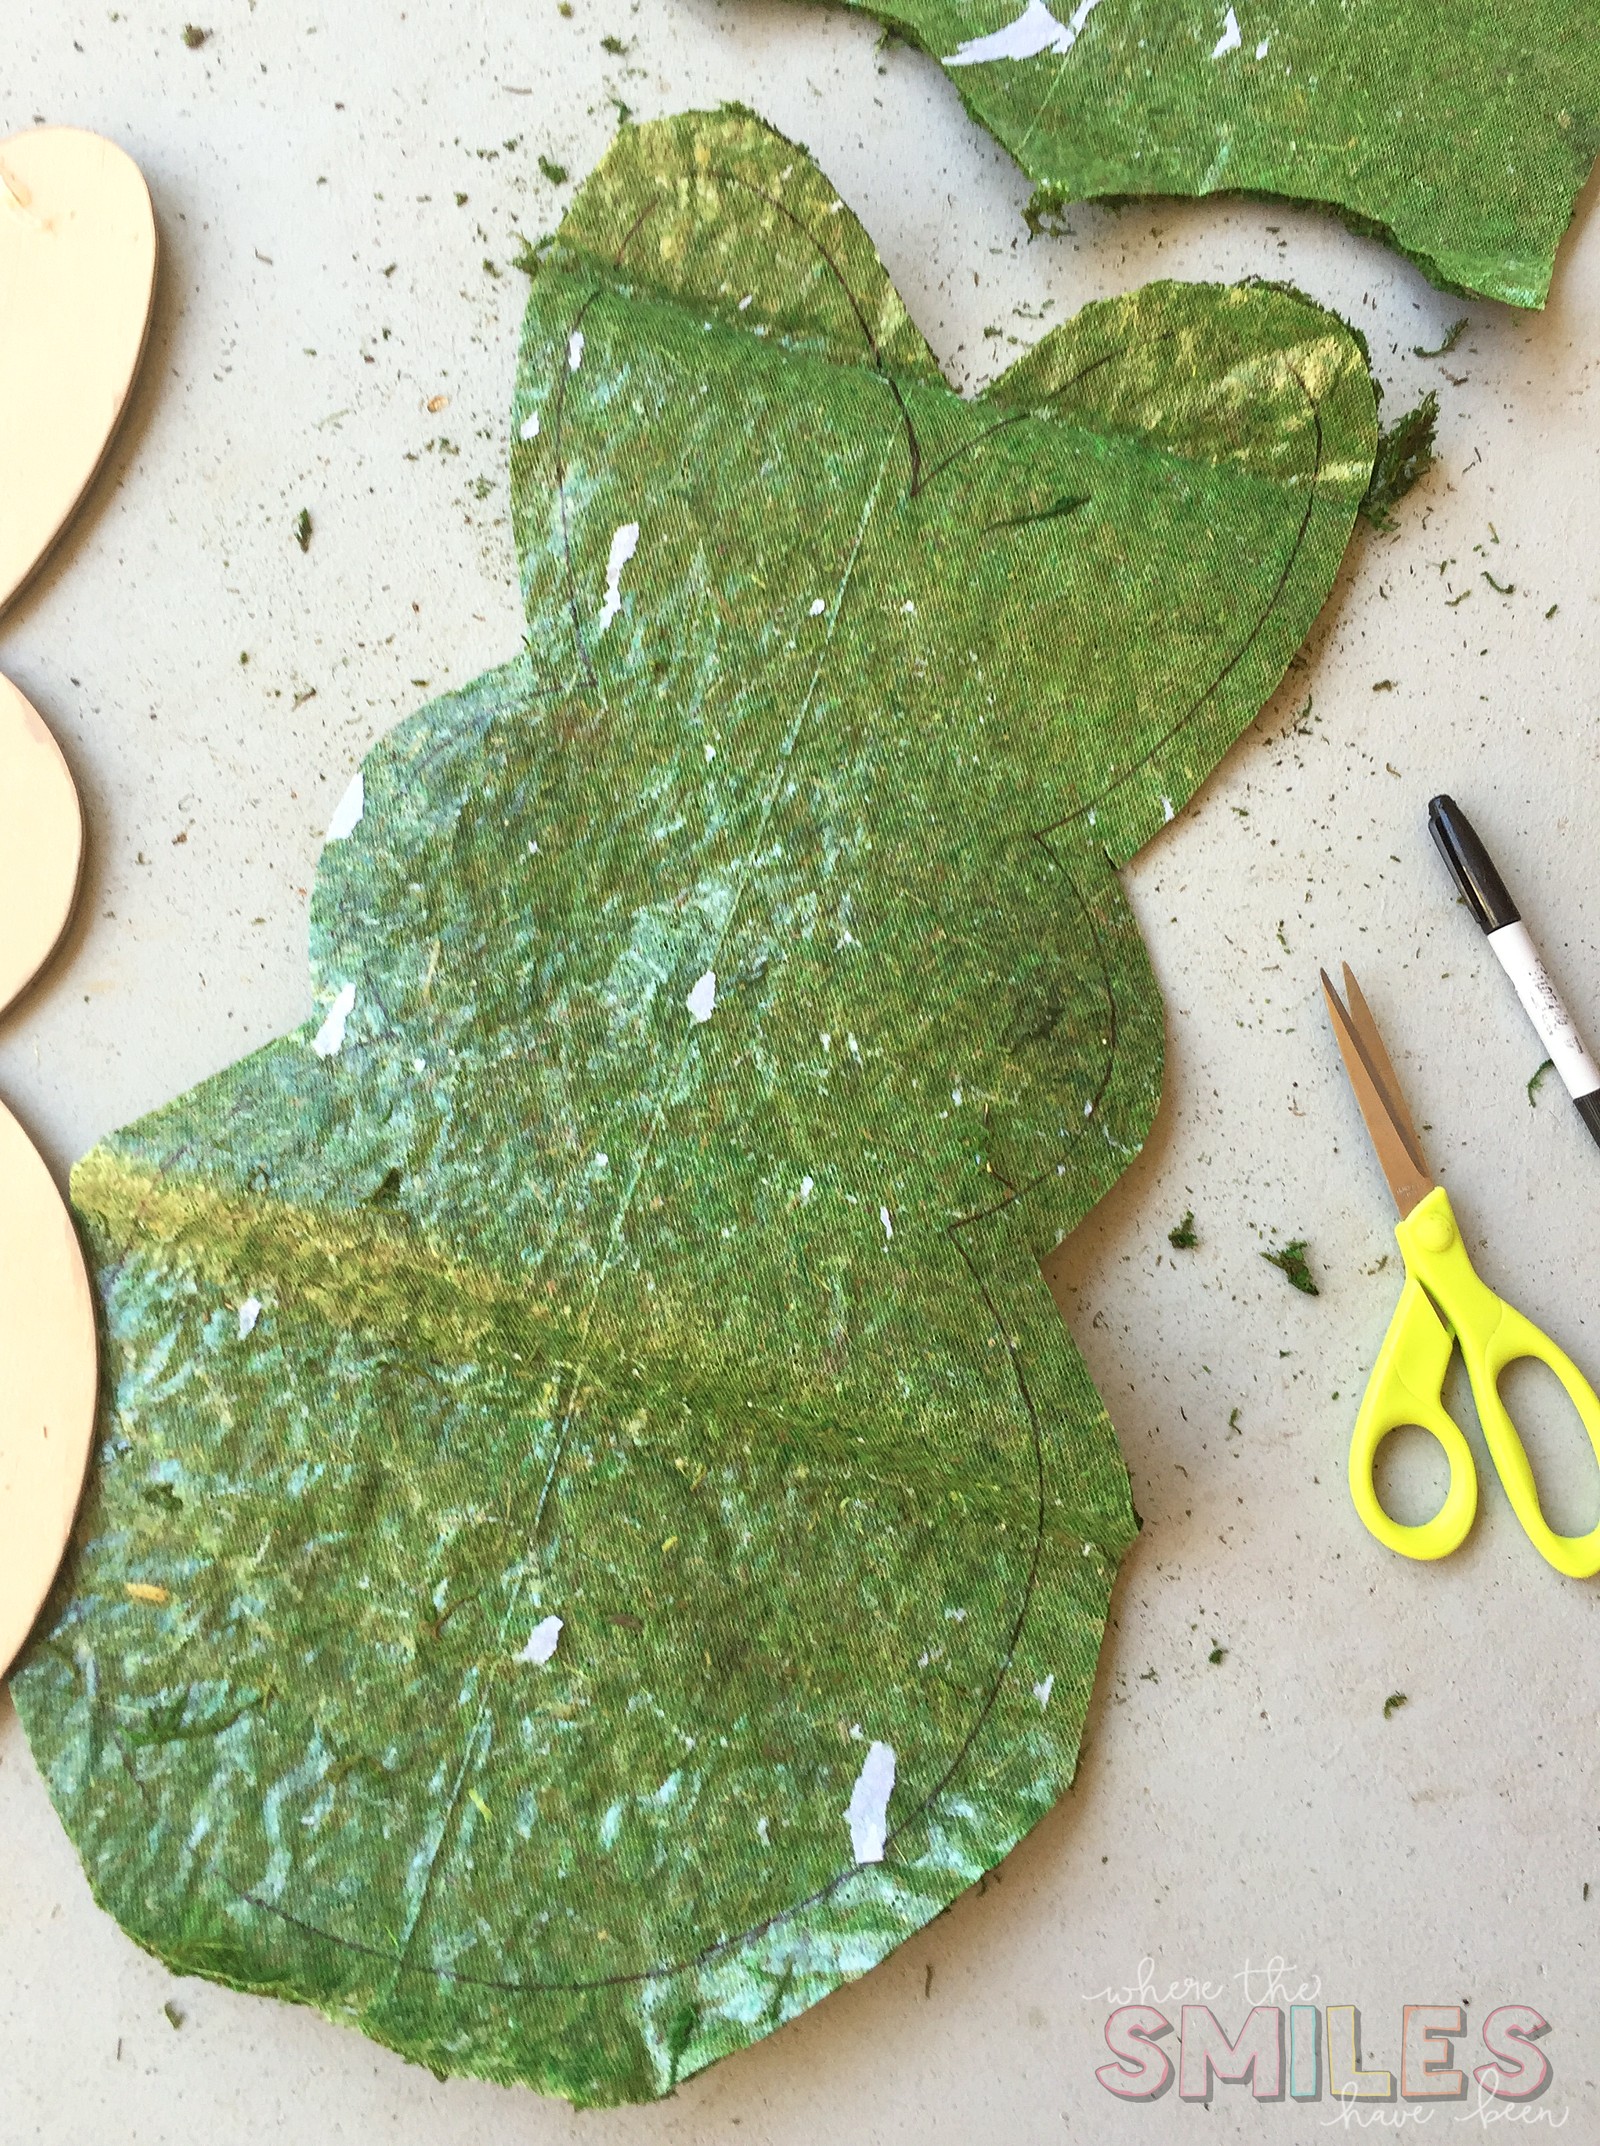 Cutting out the moss for the bunny door hanger